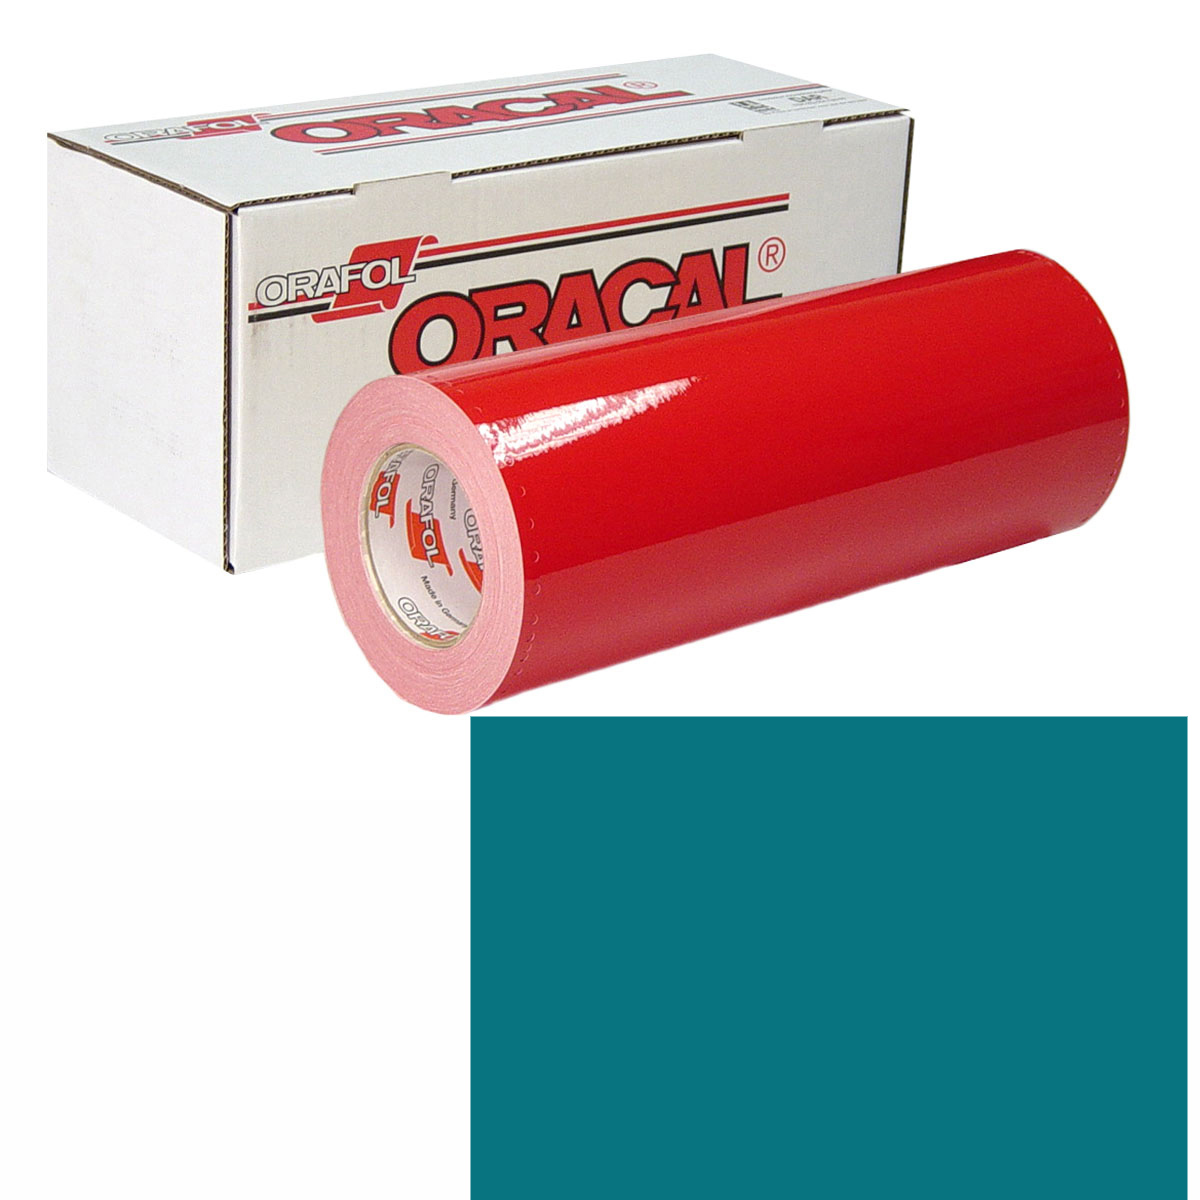 ORACAL 951M 30In X 50Yd 199 Turquoise Met